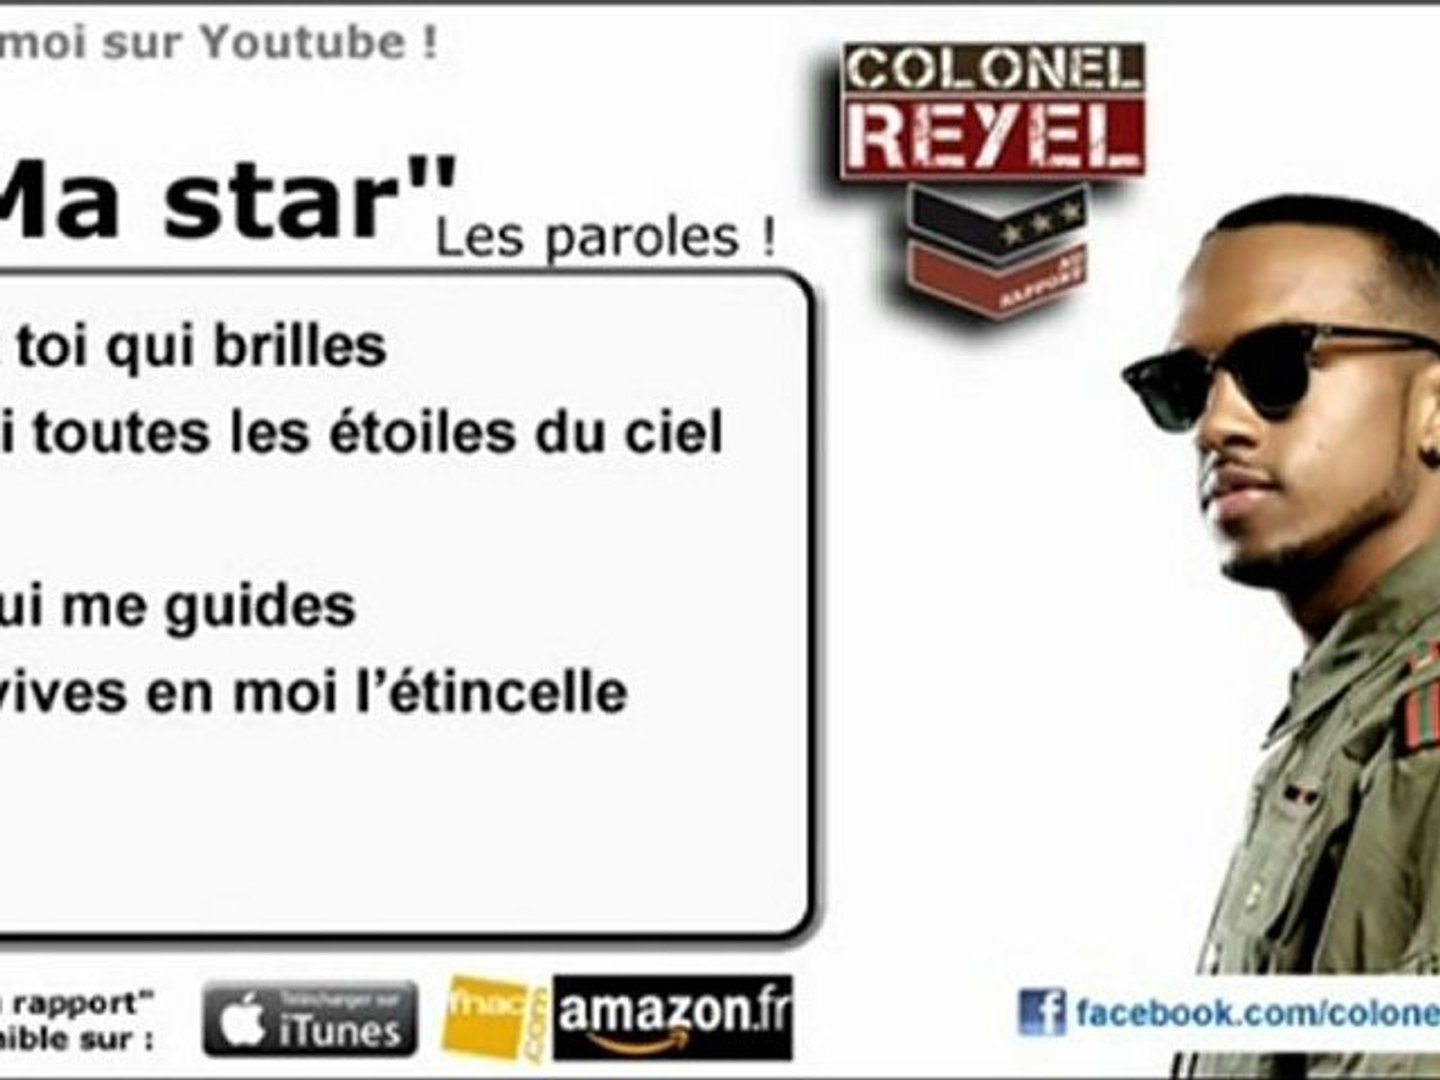 STAR TÉLÉCHARGER COLONEL REYEL MA